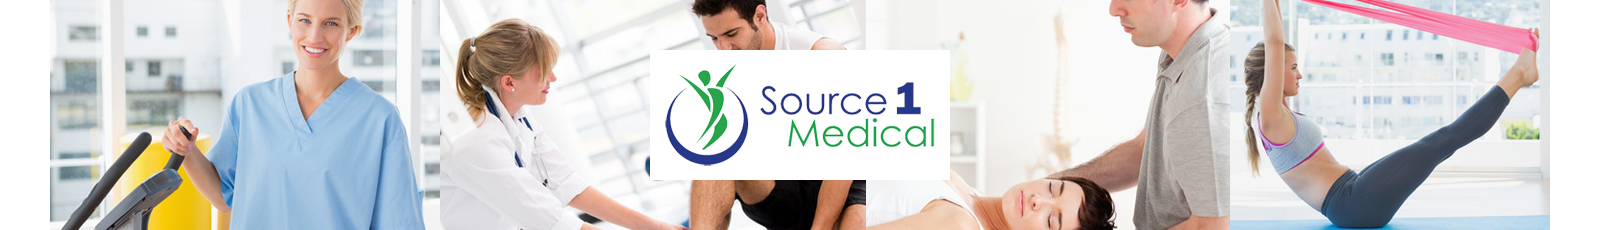 Source 1 Medical Blog